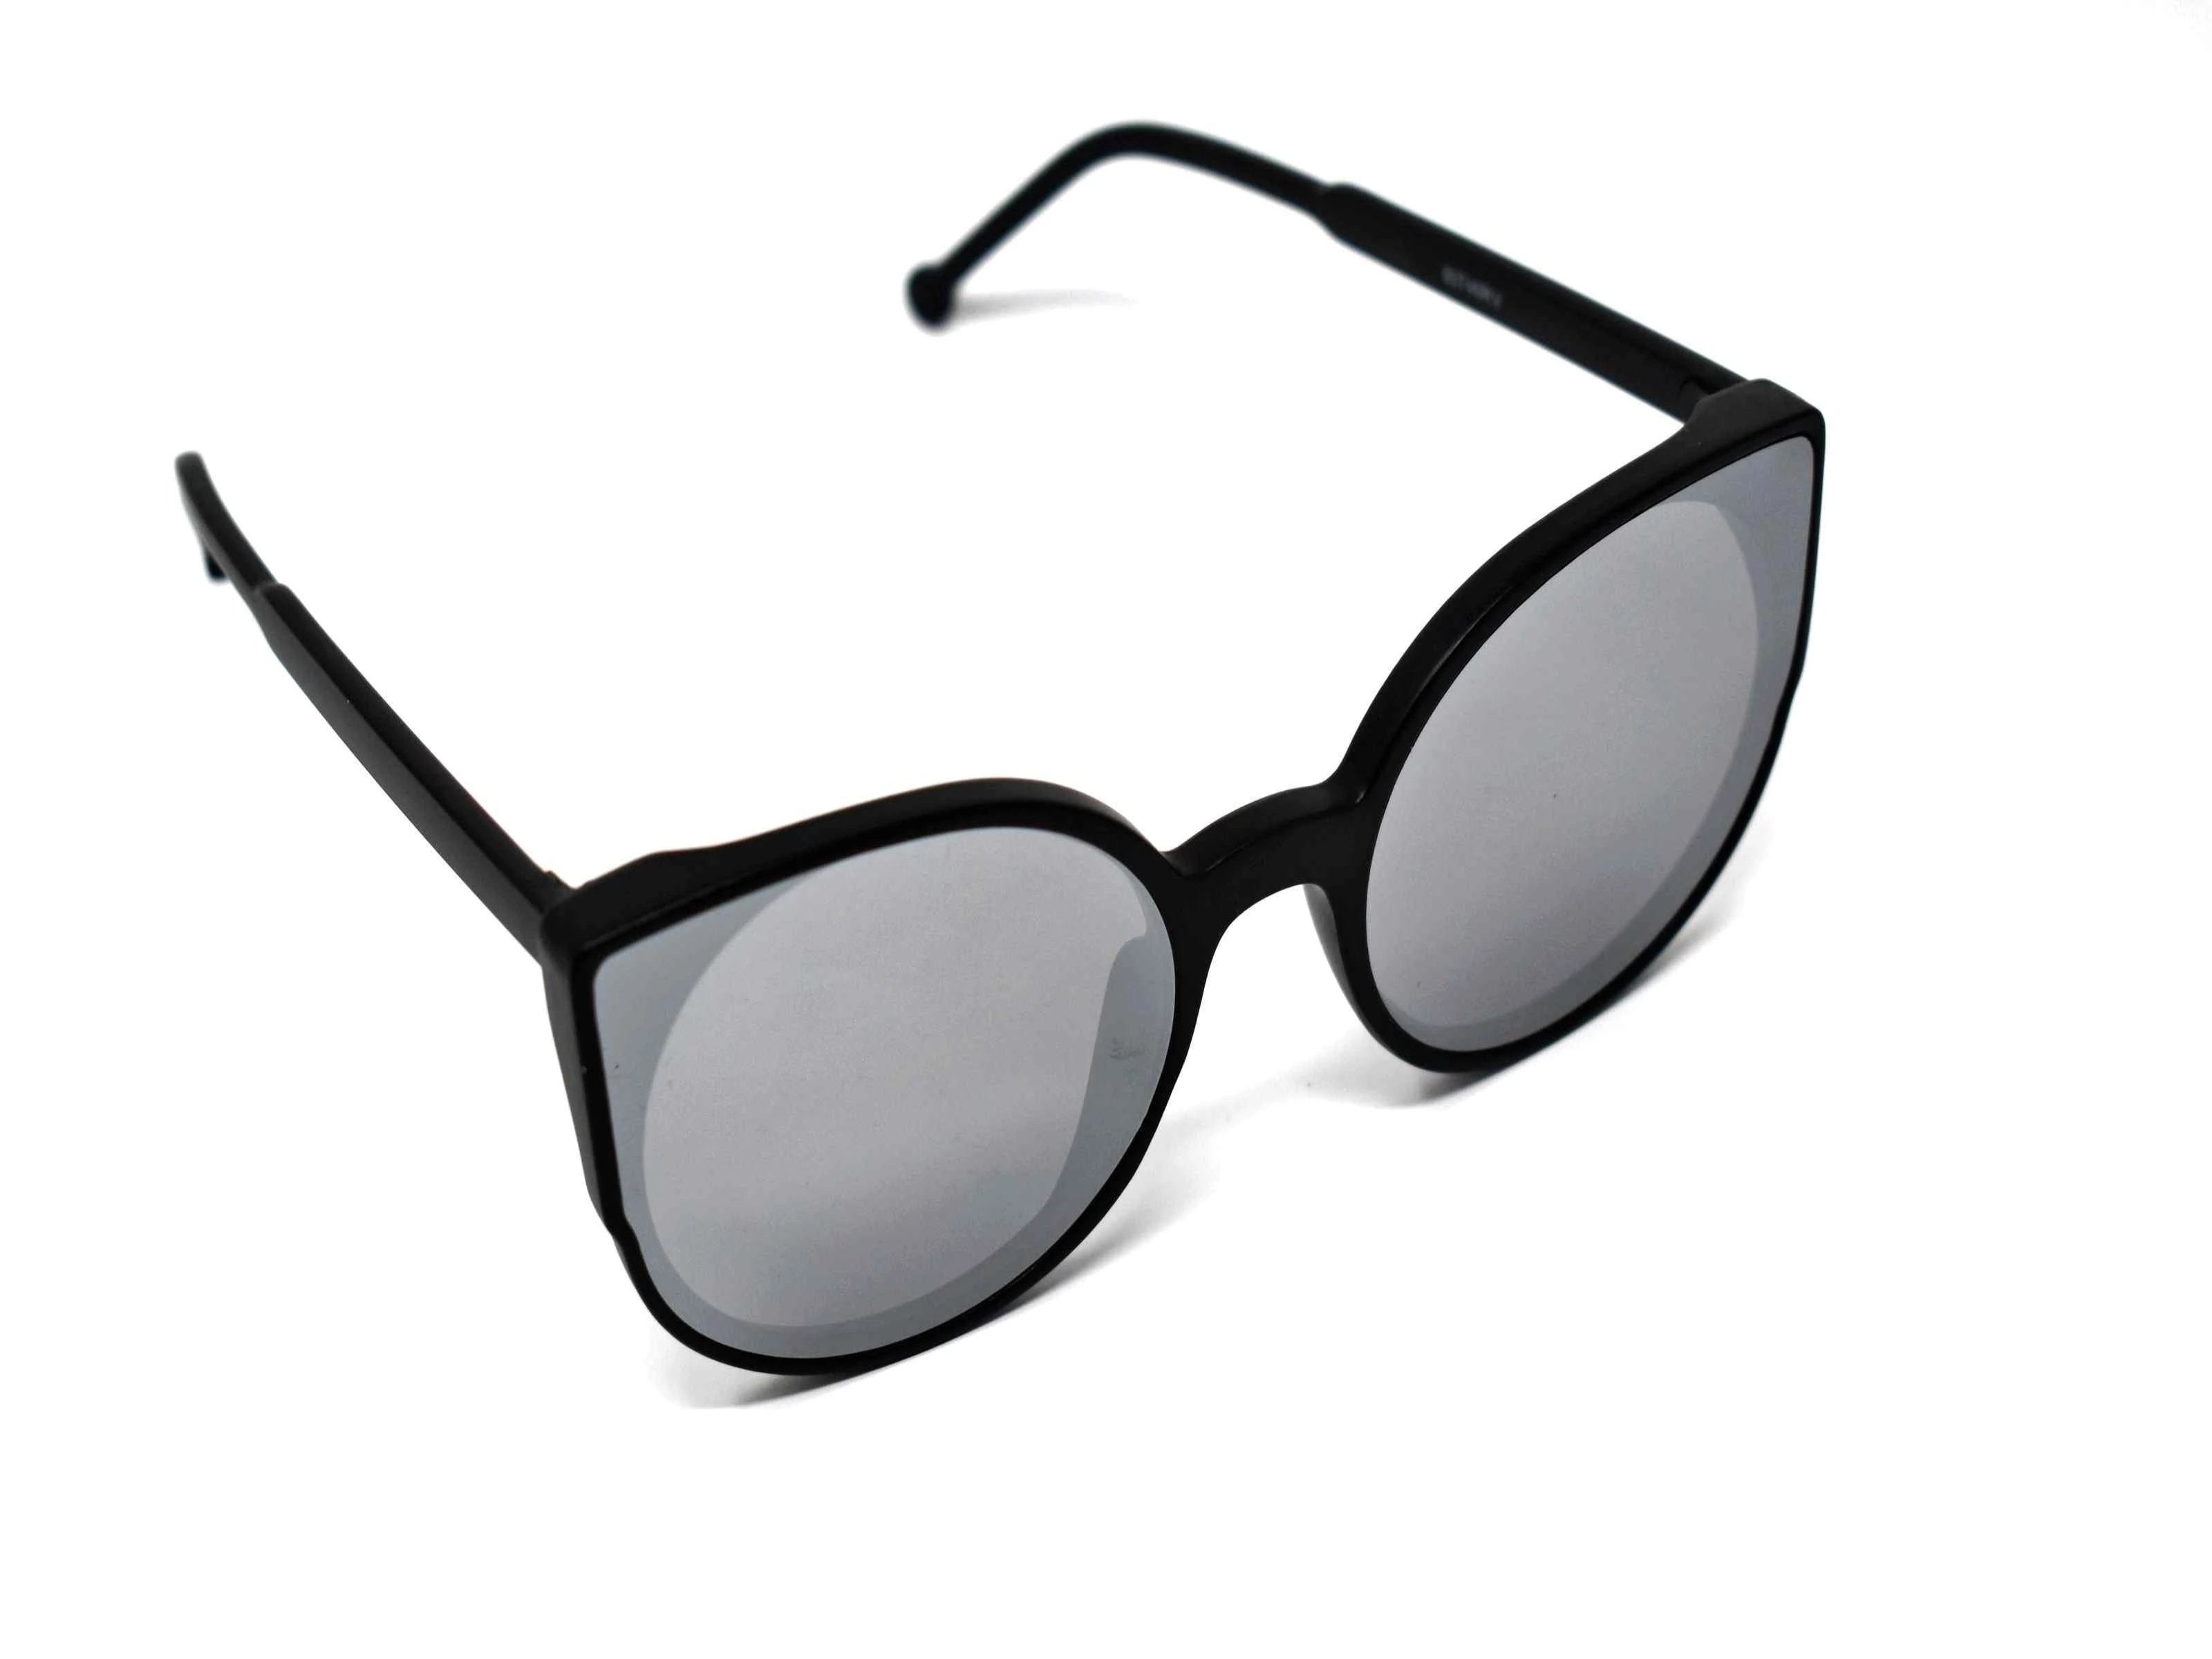 Say hello to our stylish Tansy black framed sunglasses with silver mirrored lens and a cat eye shape.